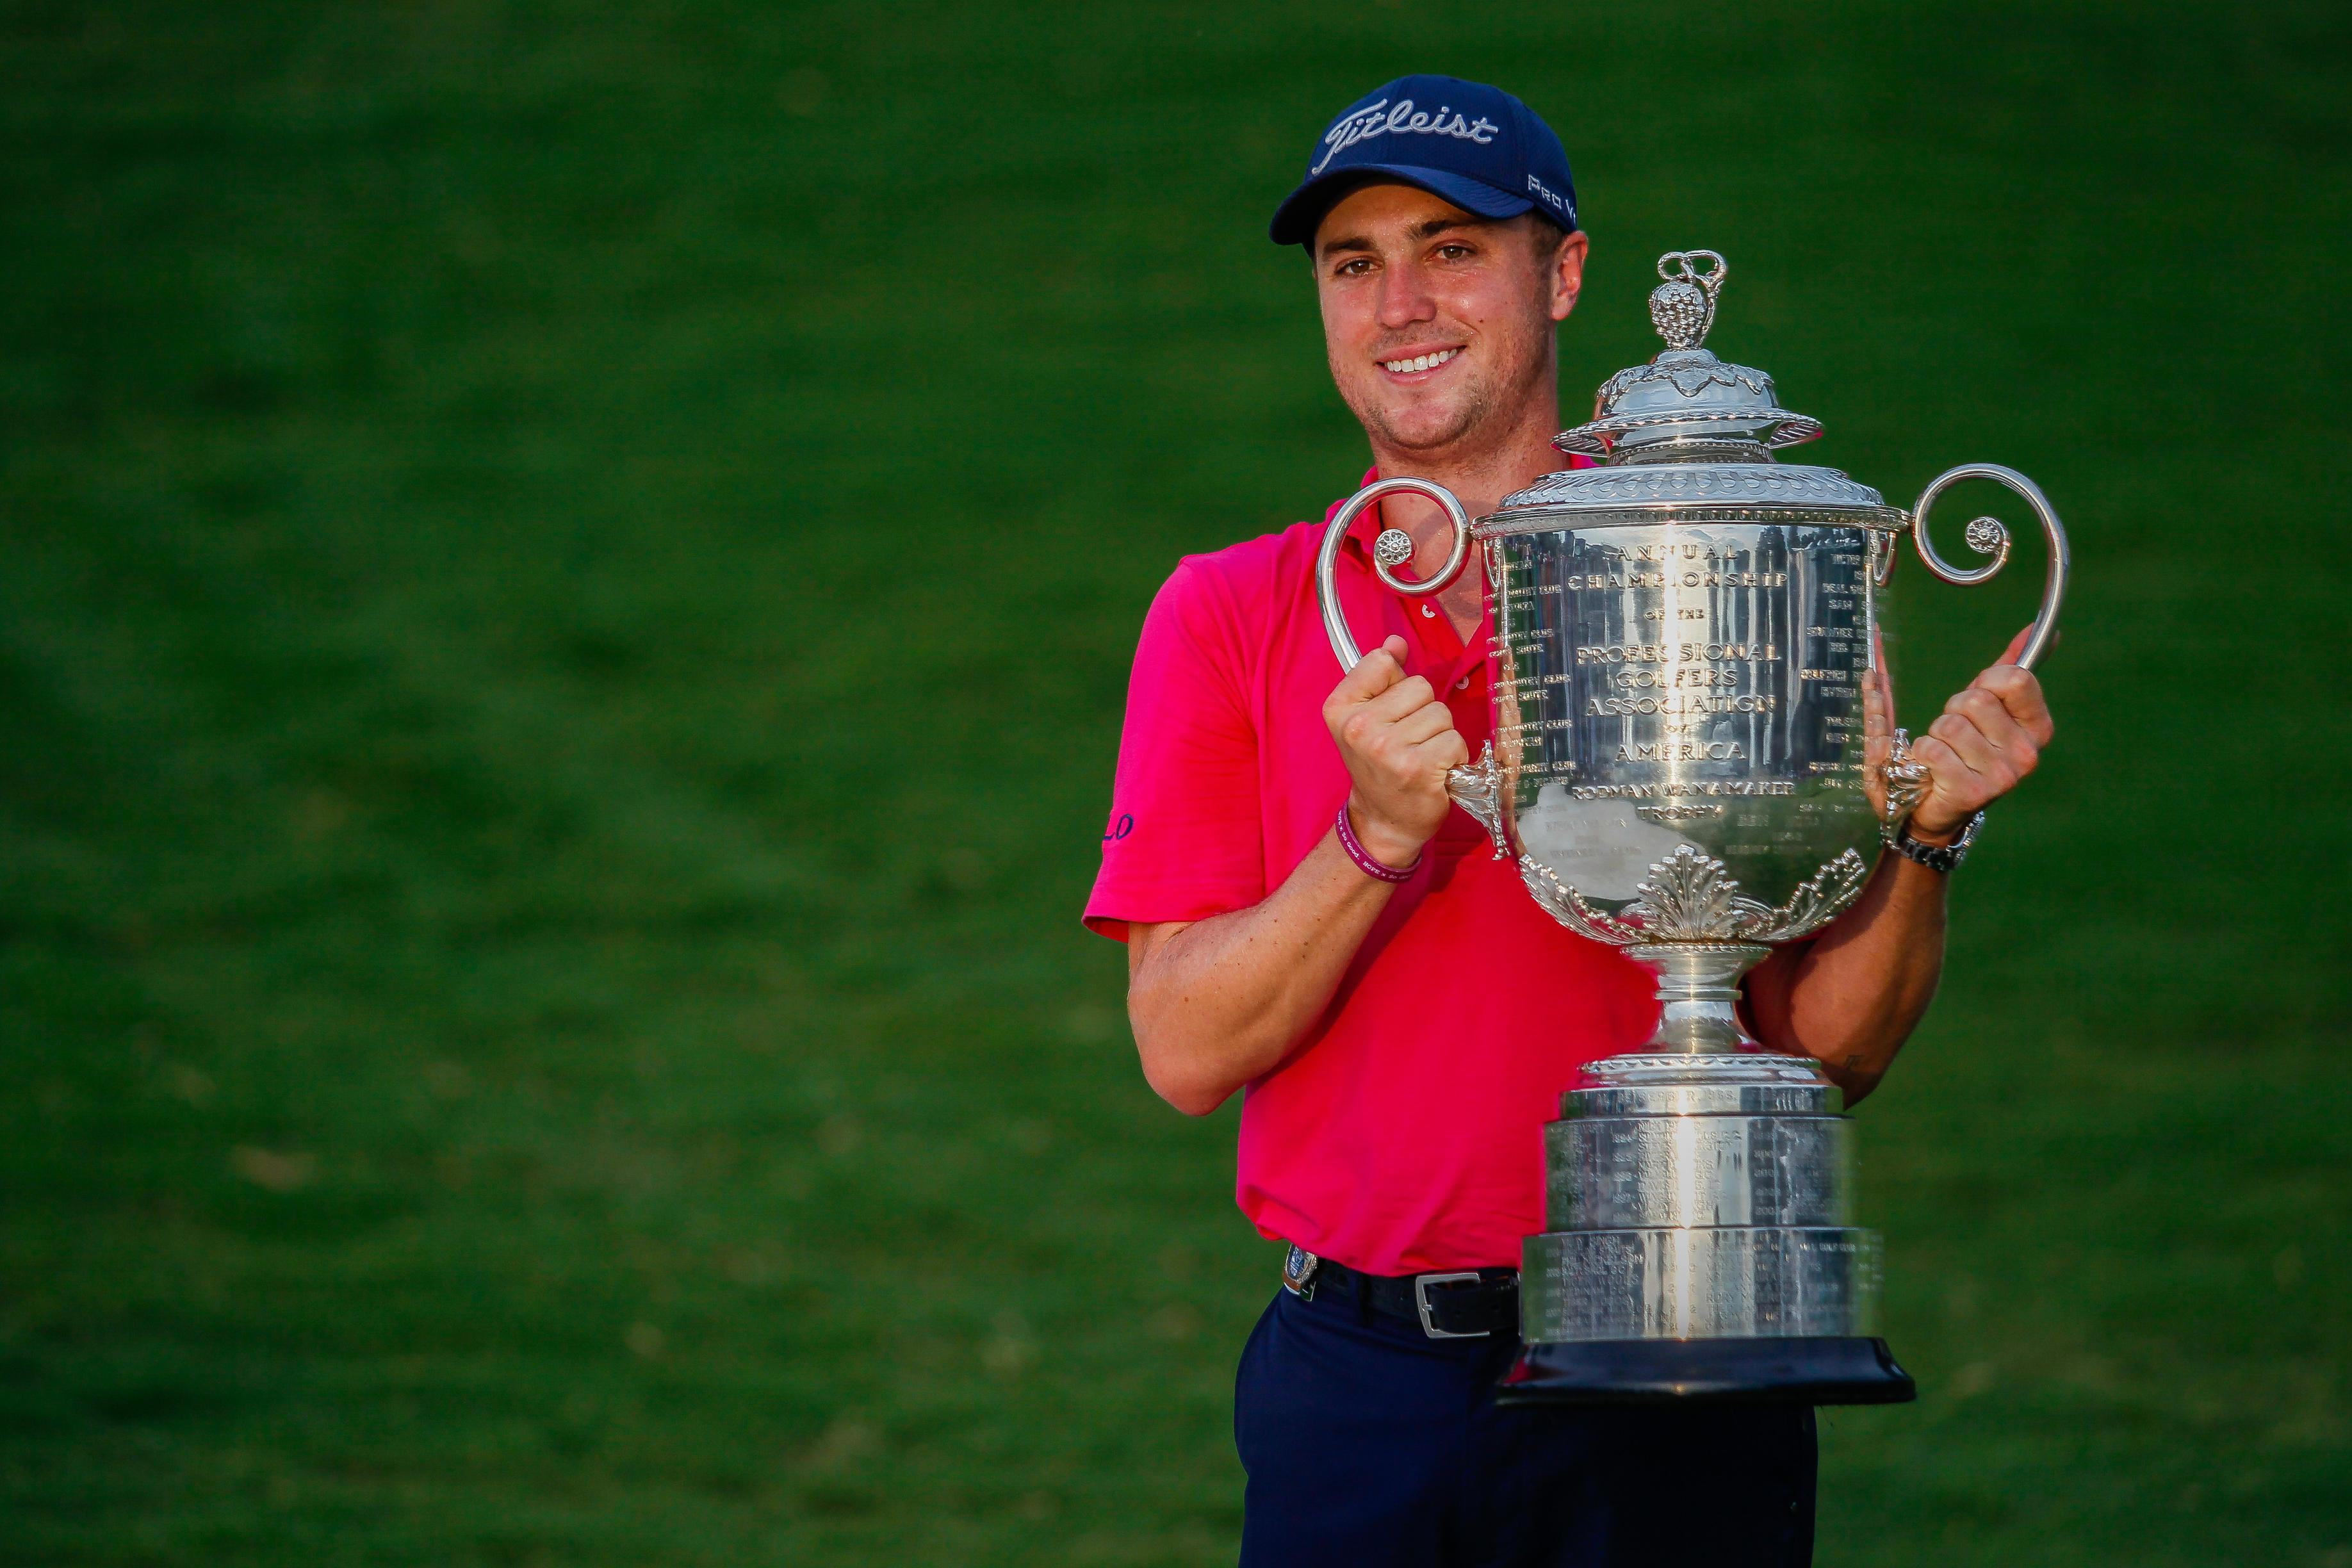 Justin Thomas lifted the trophy in 2017